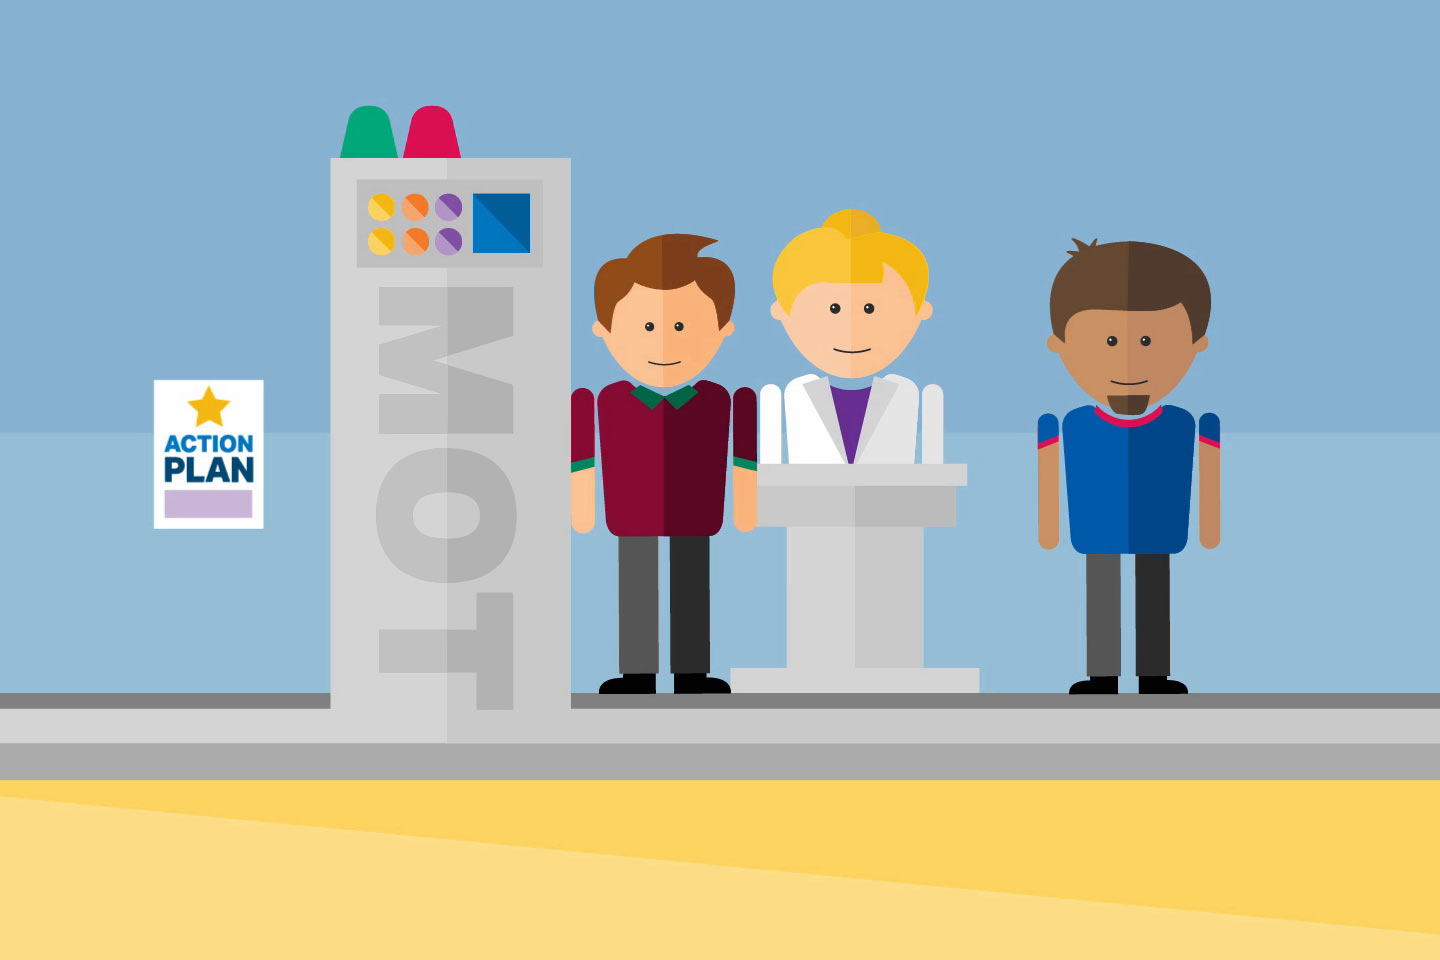 animated videos for brands and businesses